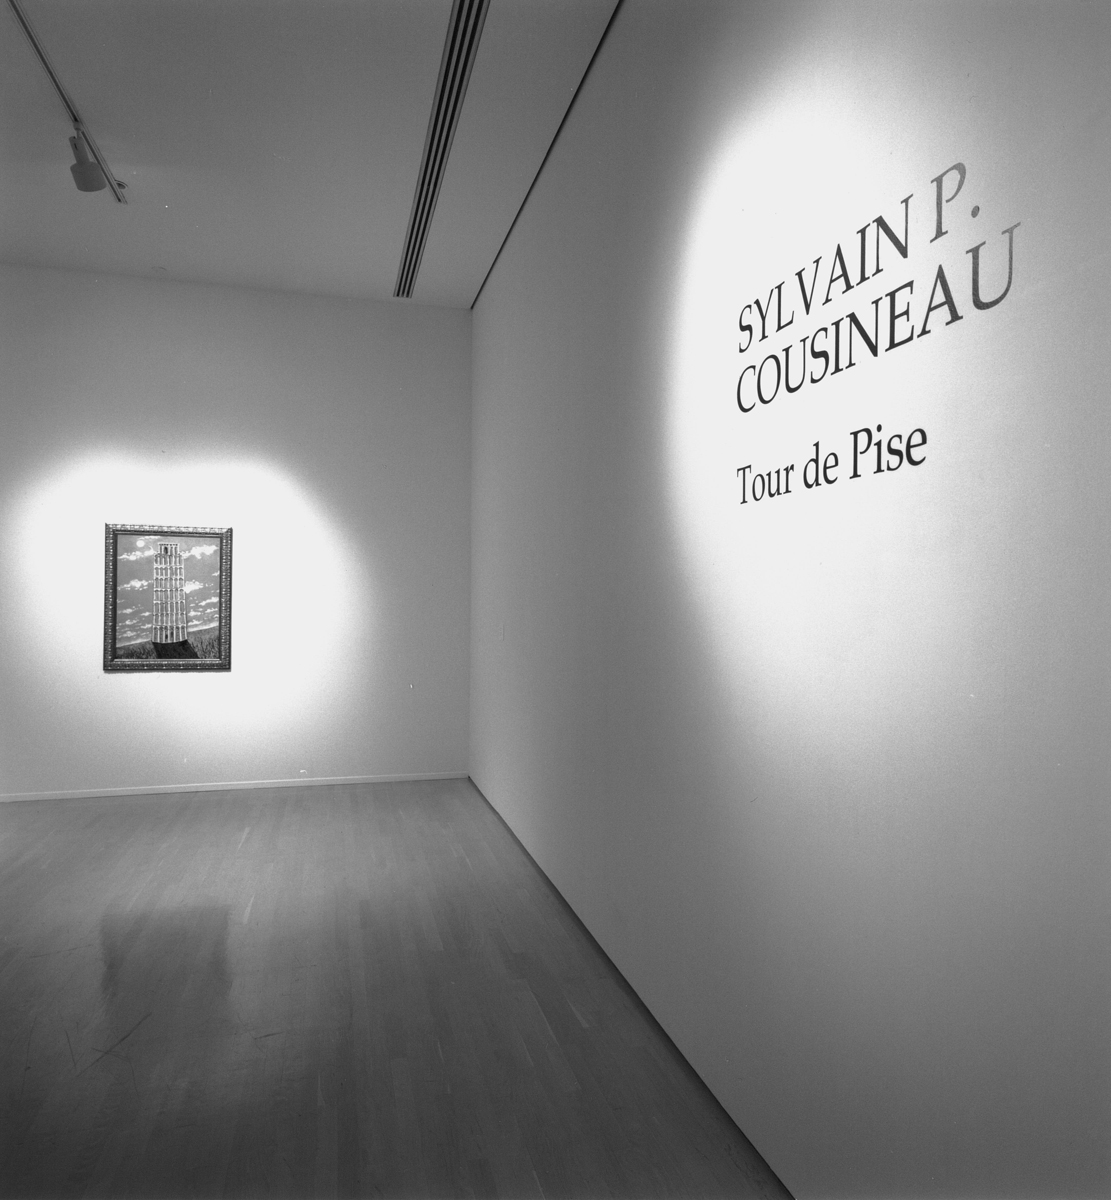 Vue partielle de l'exposition Tour de Pise,  14-06 au 06-08 1995, Musée d'art contemporain de Montréal  Photo : Richard-Max Tremblay